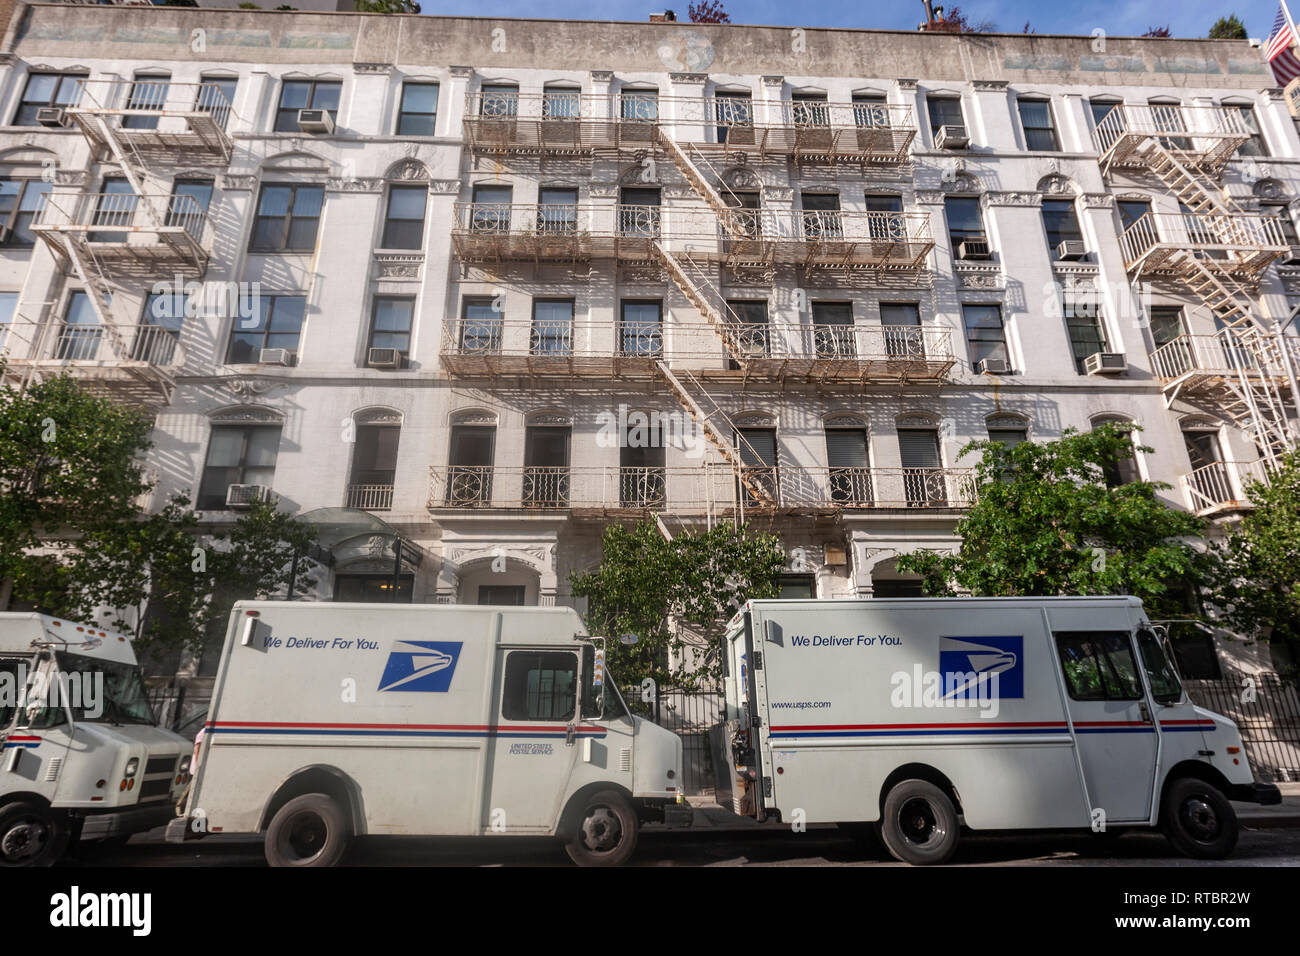 We Deliver for You UPS service vans in Manhattan, New York USA - Stock Image